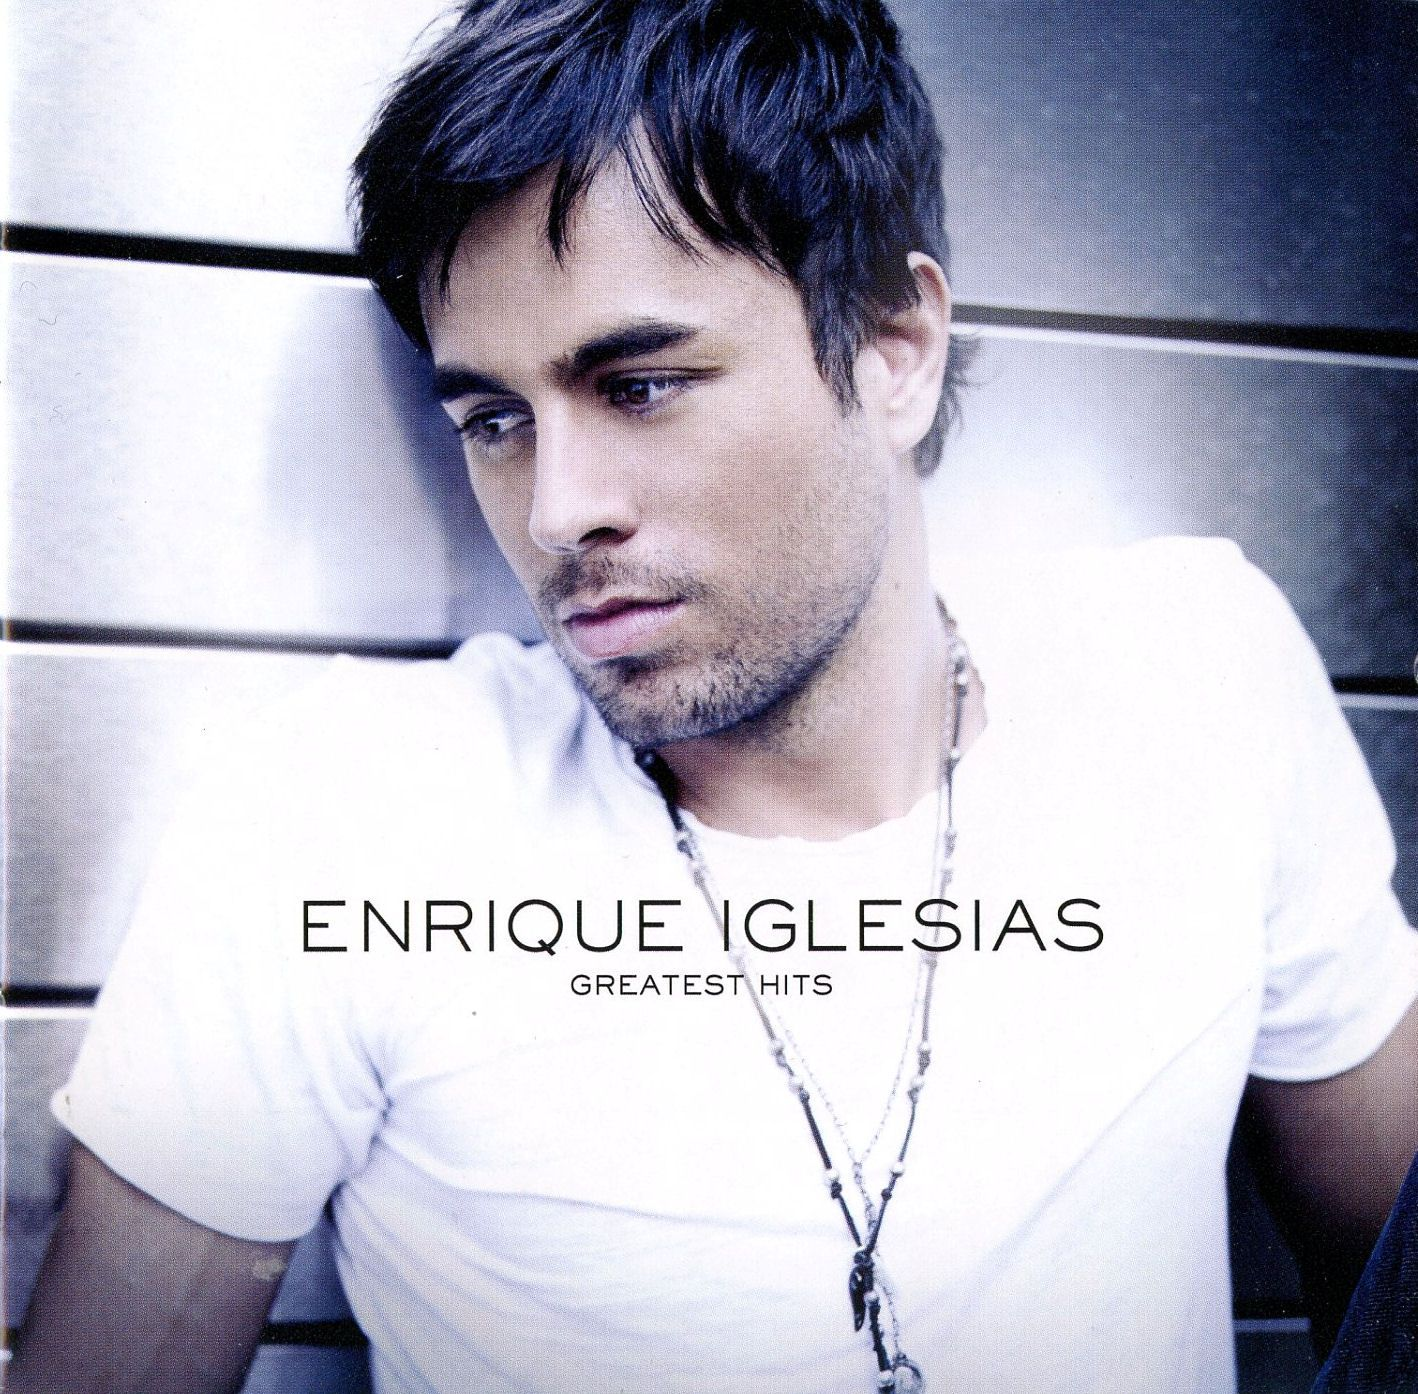 Enrique Iglesias - Greatest Hits album cover